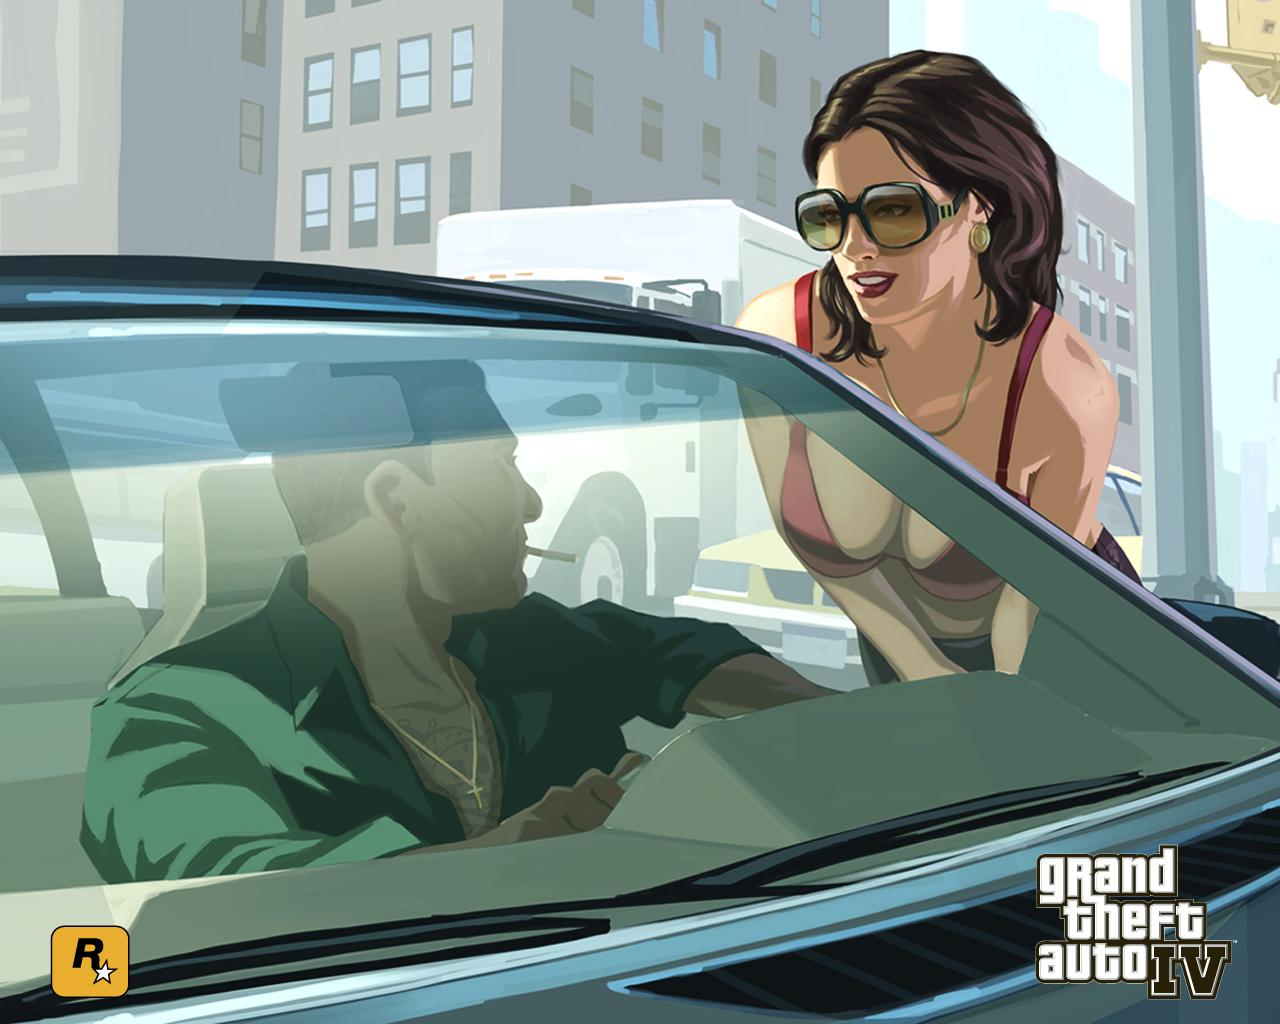 Grand Theft Auto 4 Wallpapers - Games Wallpapers #1